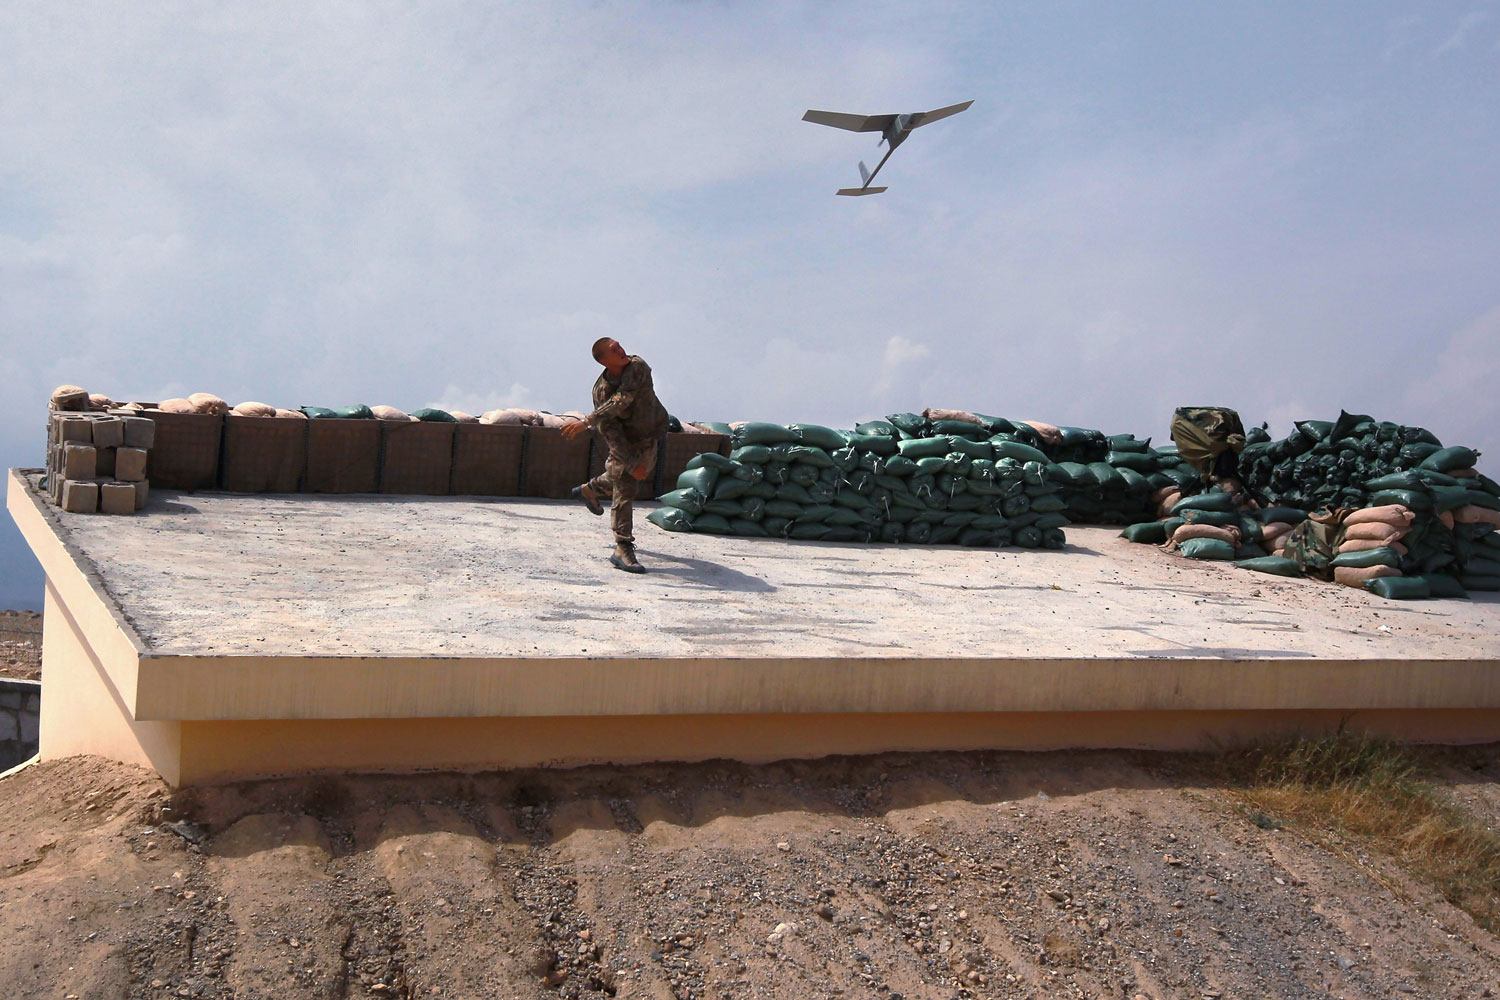 August 30, 2011. U.S. Army Sgt. Don Stolle launches a Raven surveillance drone into the air from the Afghan government district center in Achin, Afghanistan. The military uses the small unmanned aerial vehicles (UAVs) to transmit live video back and watch for possible Taliban movements near U.S. forces on the ground. The craft, controled remotely like a model airplane, can fly for up to 1 1/2 hours and a distance of about 6 miles on its electronic motor before being brought back and relaunched with a fresh battery.